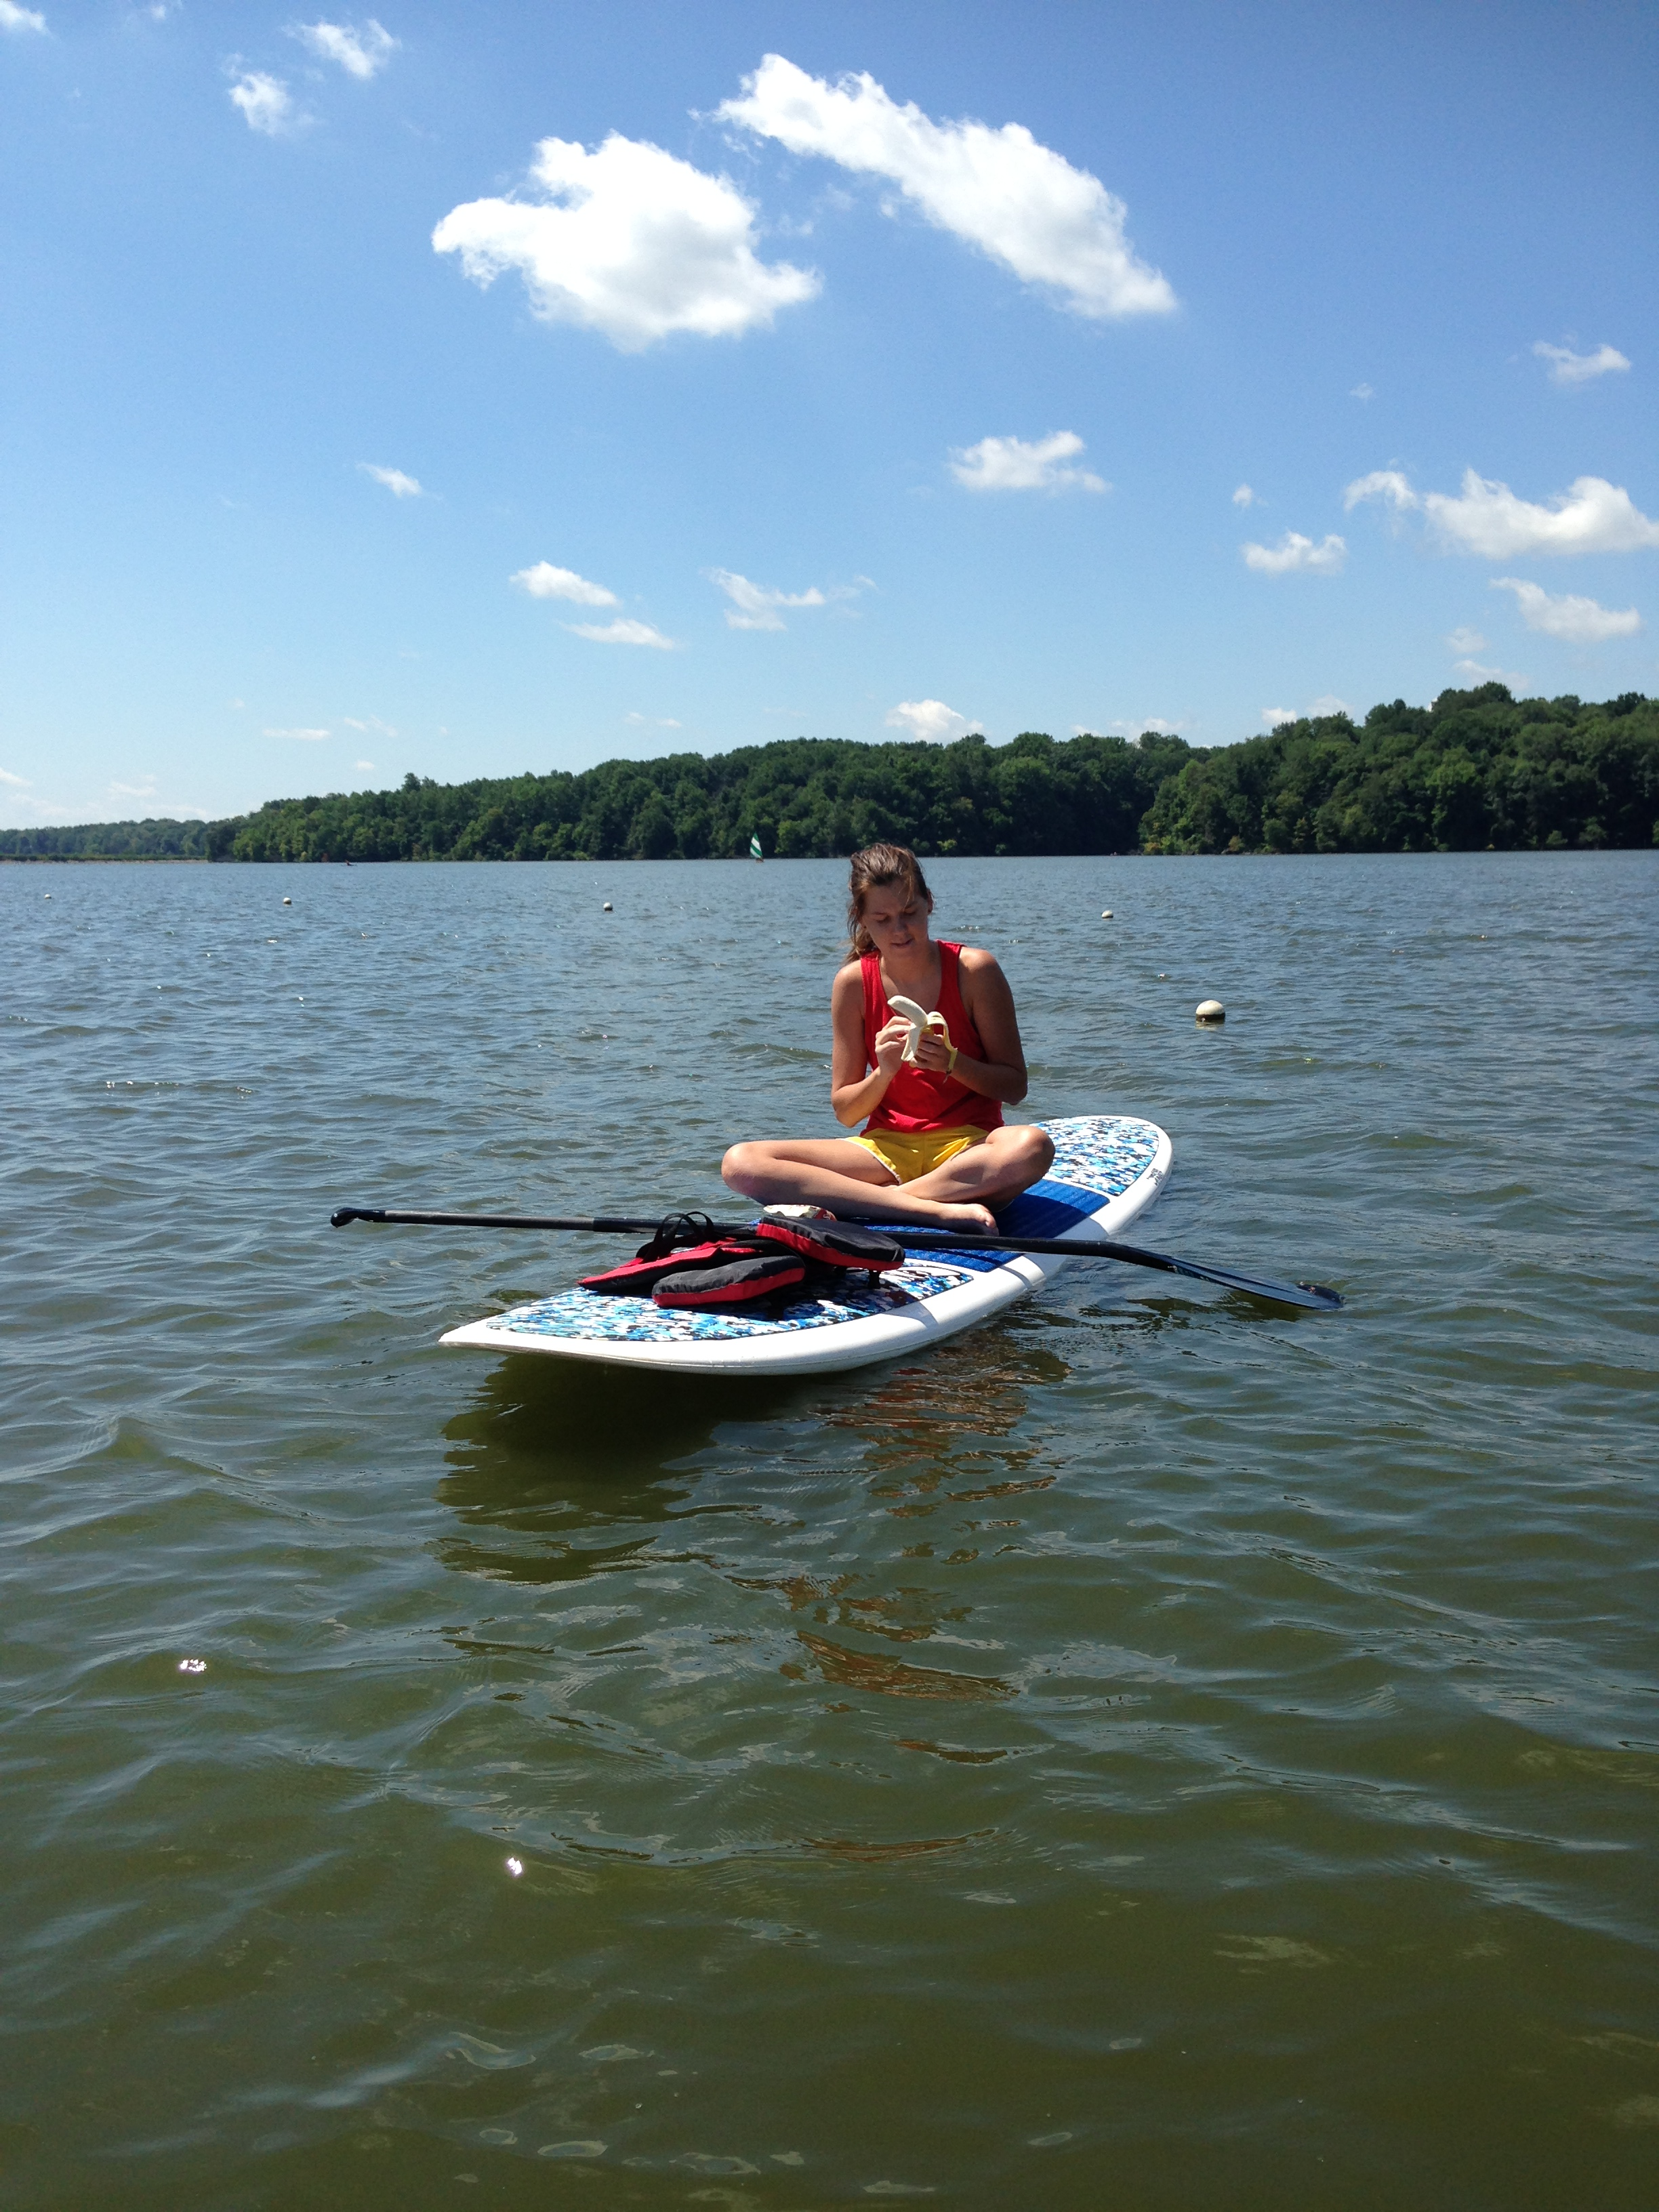 Snacking on the paddle board.